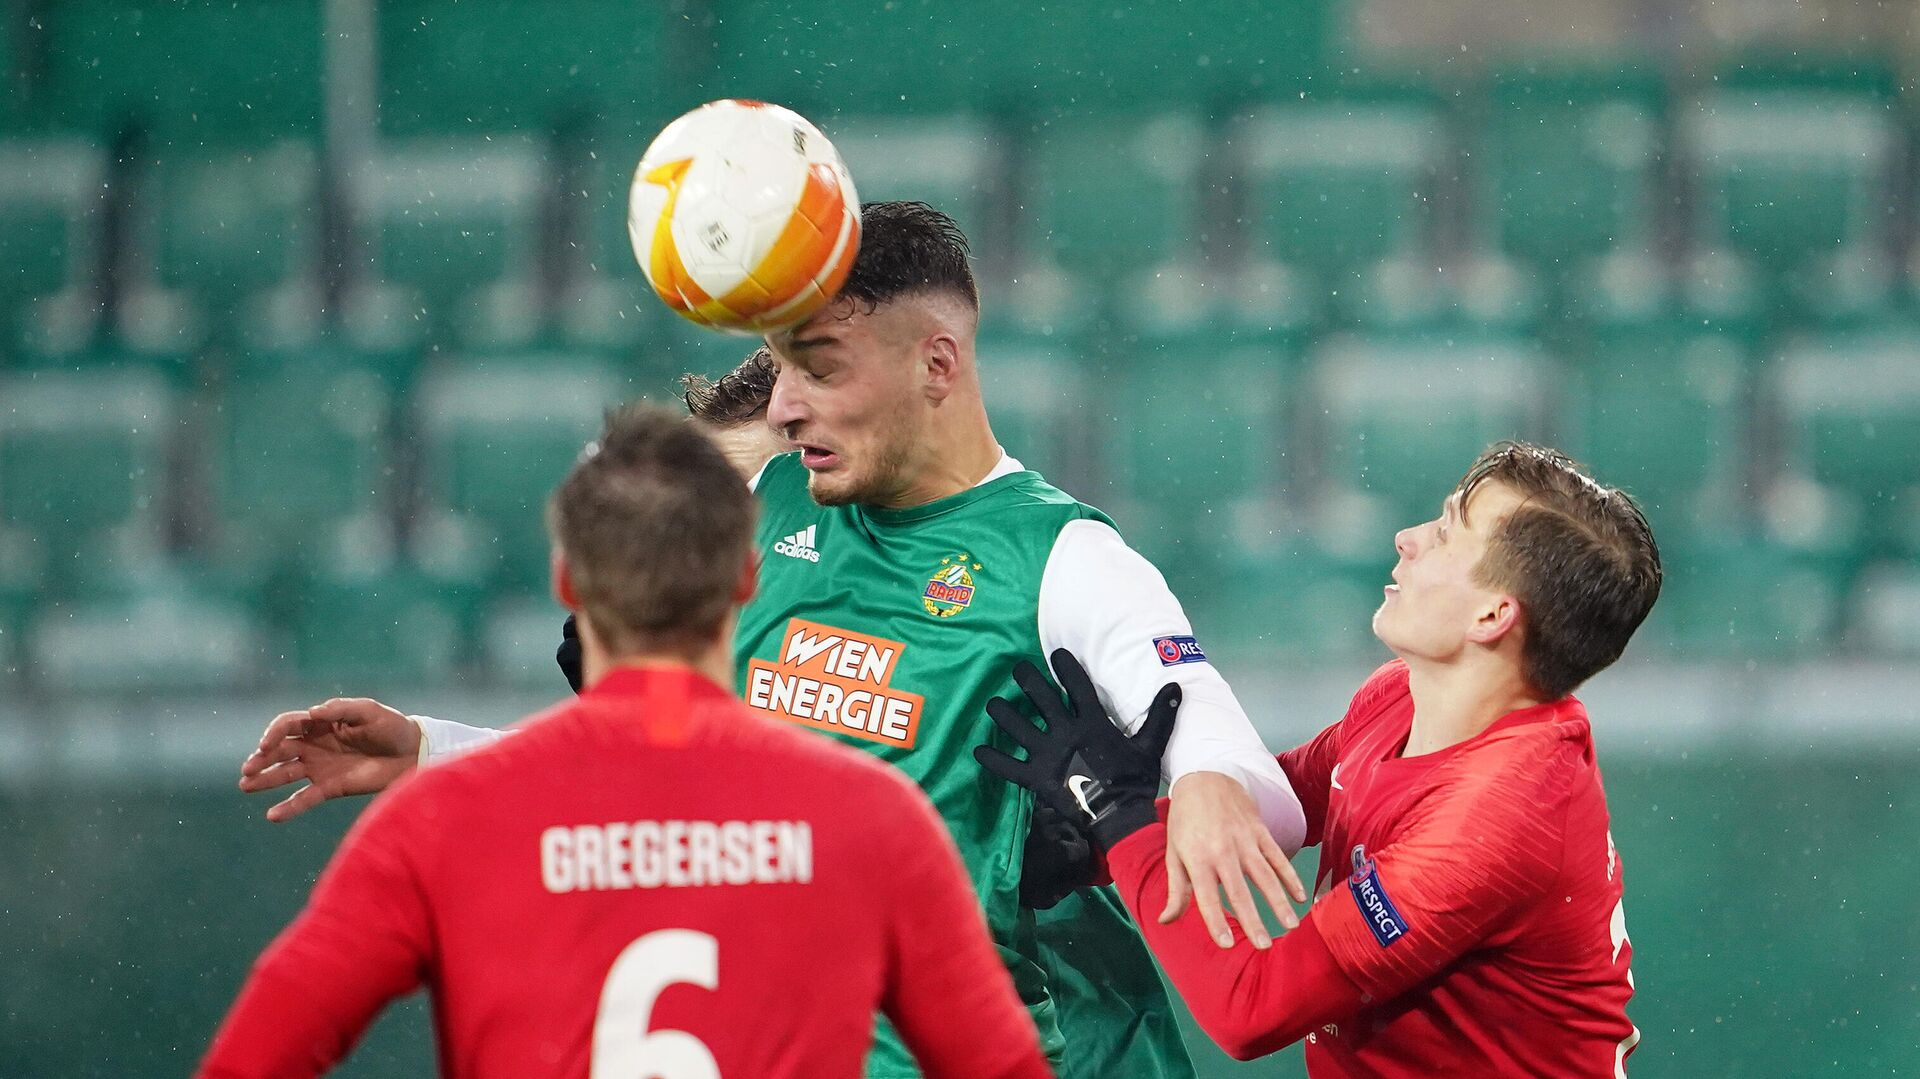 Rapid Wien's Austrian forward Ercan Kara and Molde's Norwegian defender Marcus Holmgren Pedersen vie for the ball during the UEFA Europa League Group B football match between SK Rapid Wien and Molde FK at the Weststadion in Vienna on December 10, 2020. (Photo by GEORG HOCHMUTH / APA / AFP) / AUSTRIA OUT - РИА Новости, 1920, 10.12.2020